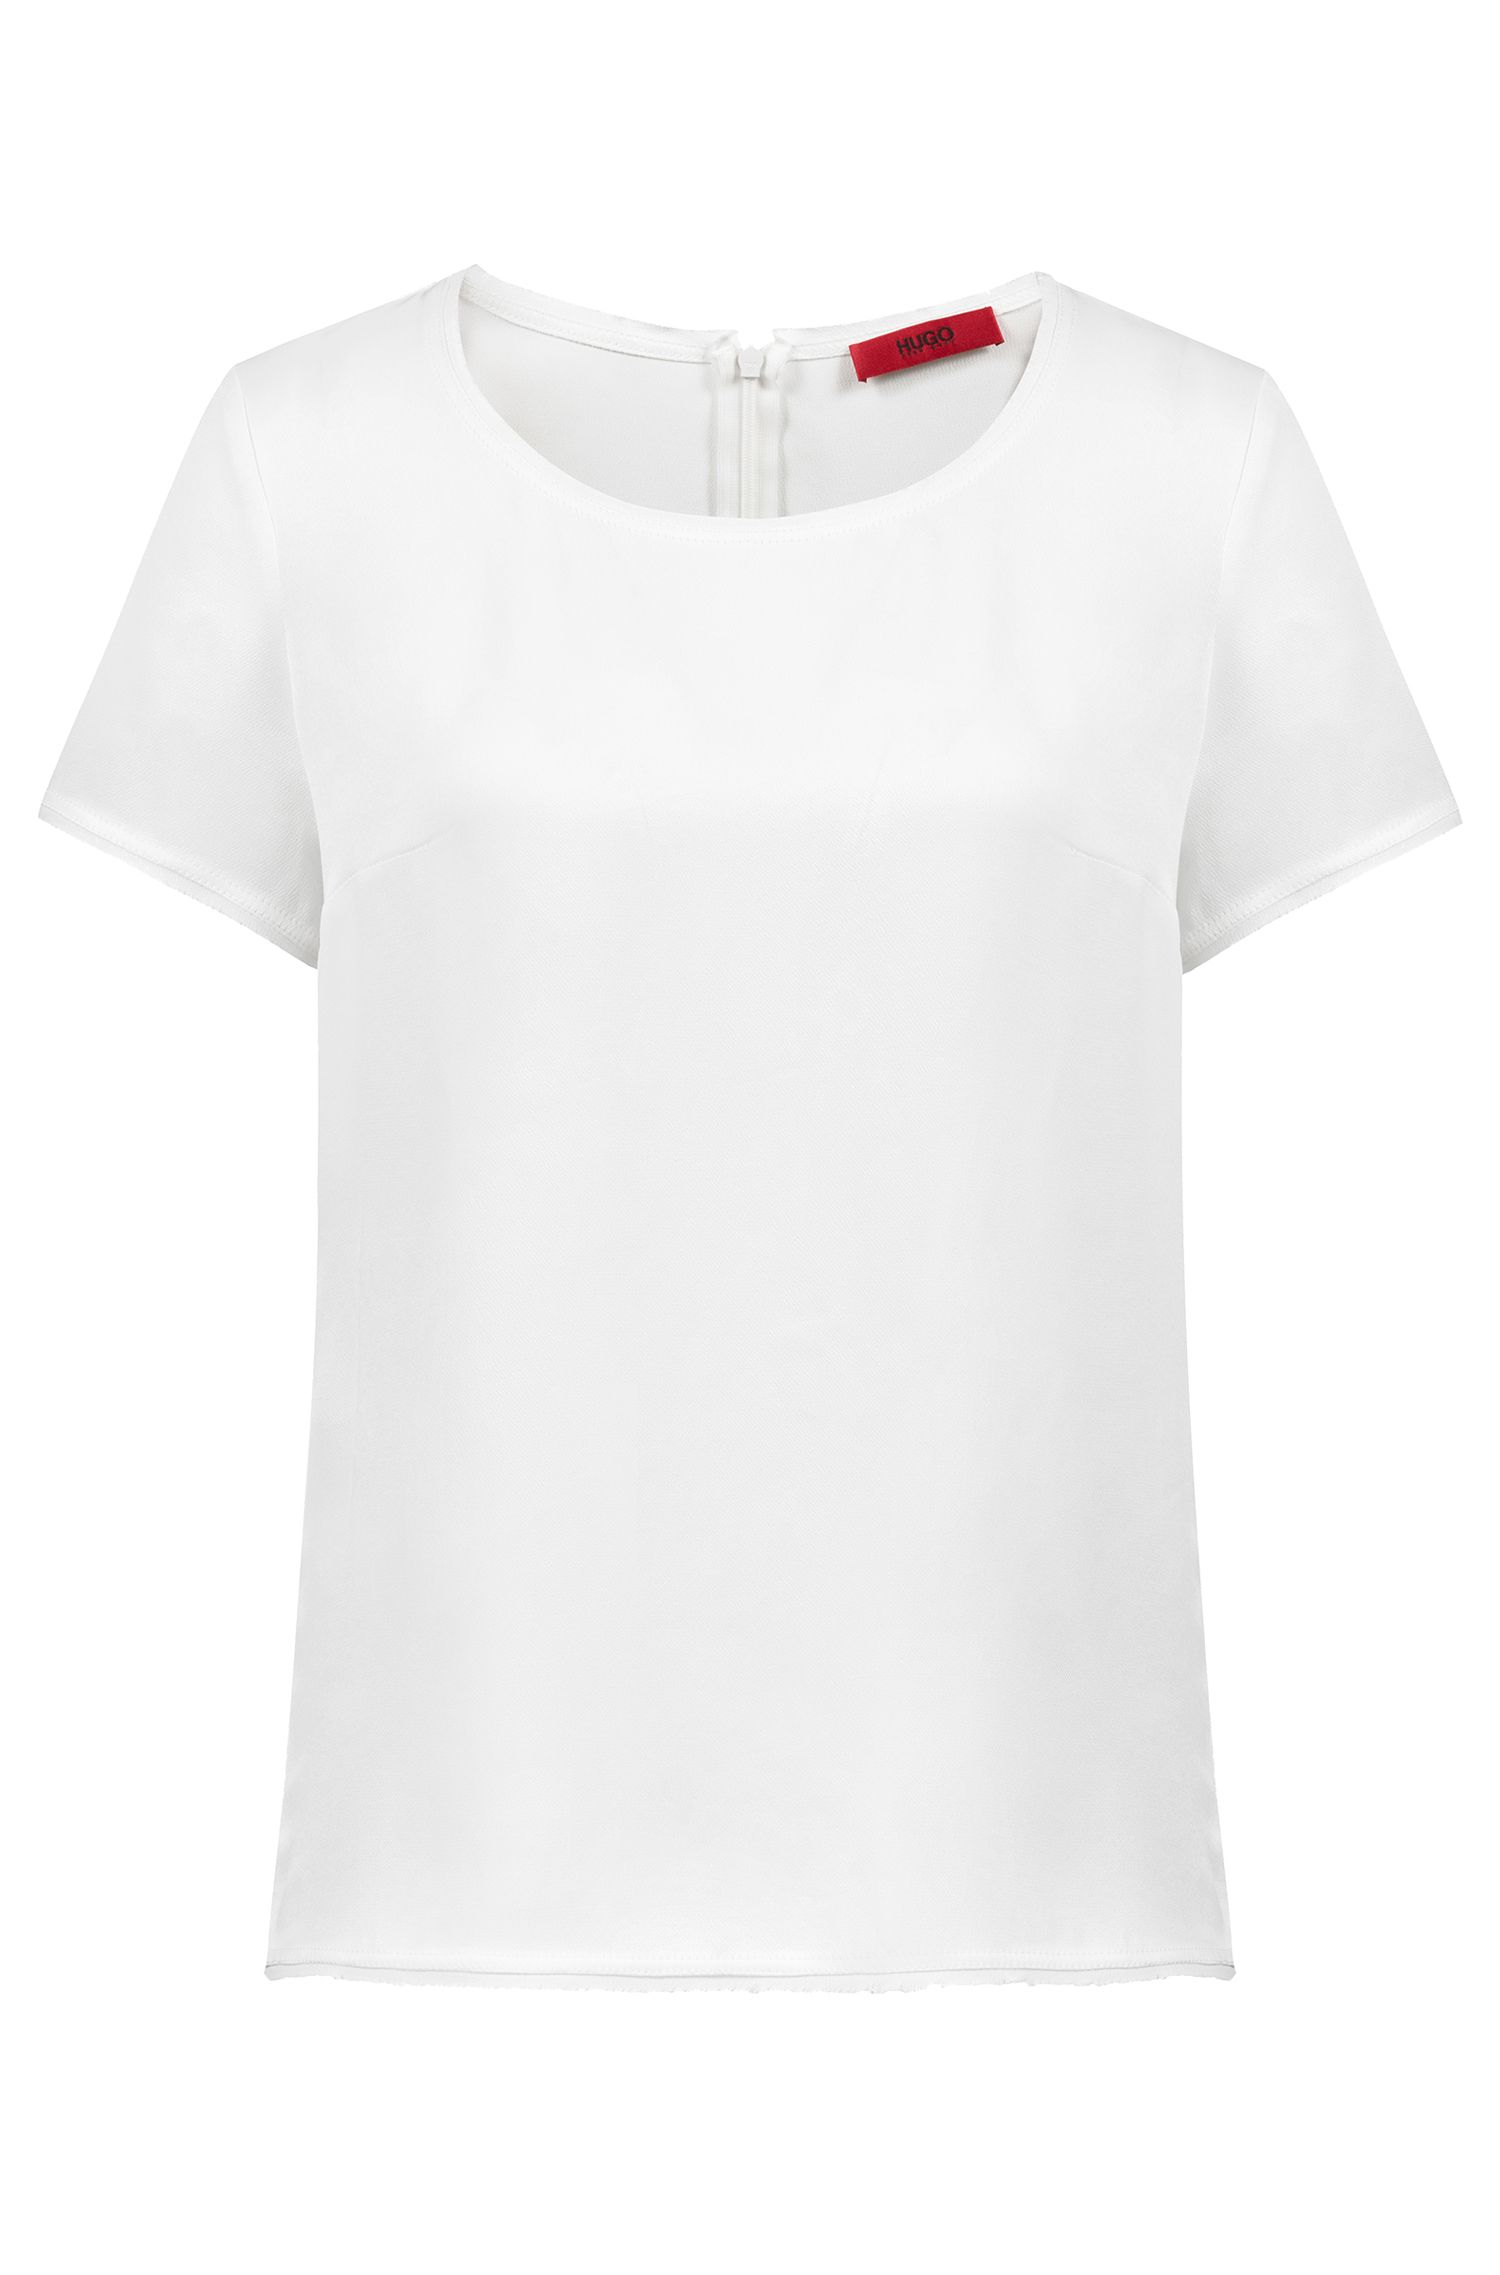 Short-sleeved top in a lustrous fabric